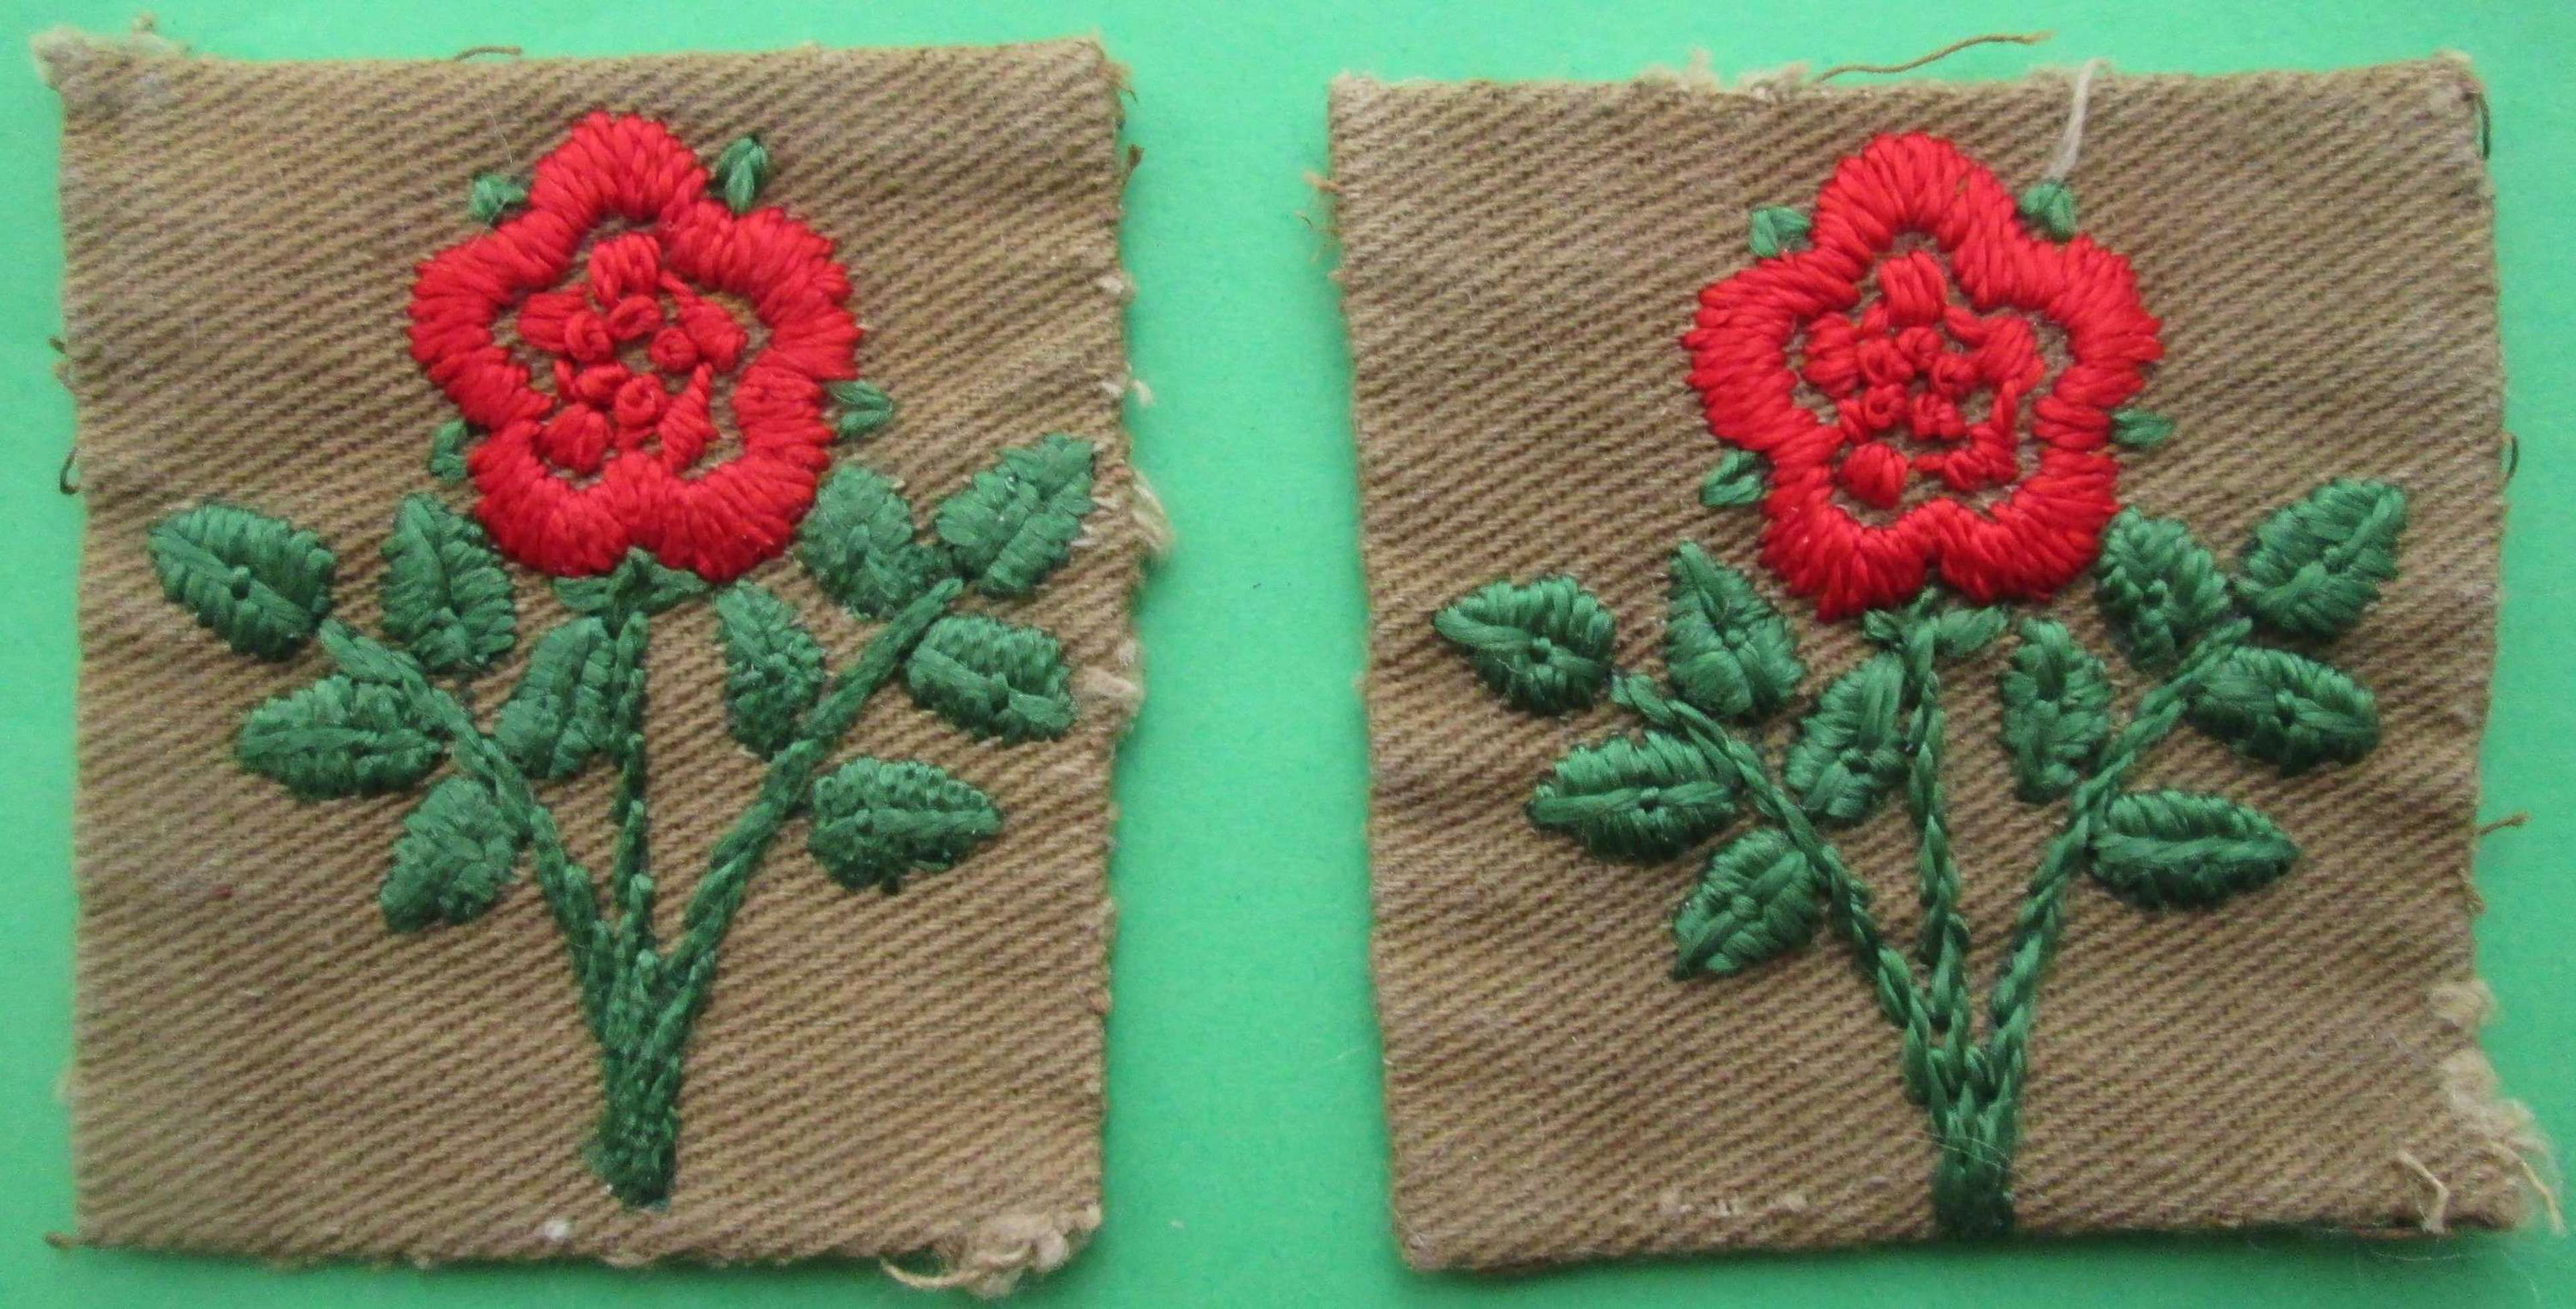 55th(WEST LANCASHIRE) DIVISION 2ND PATTERN FORMATION SIGNS